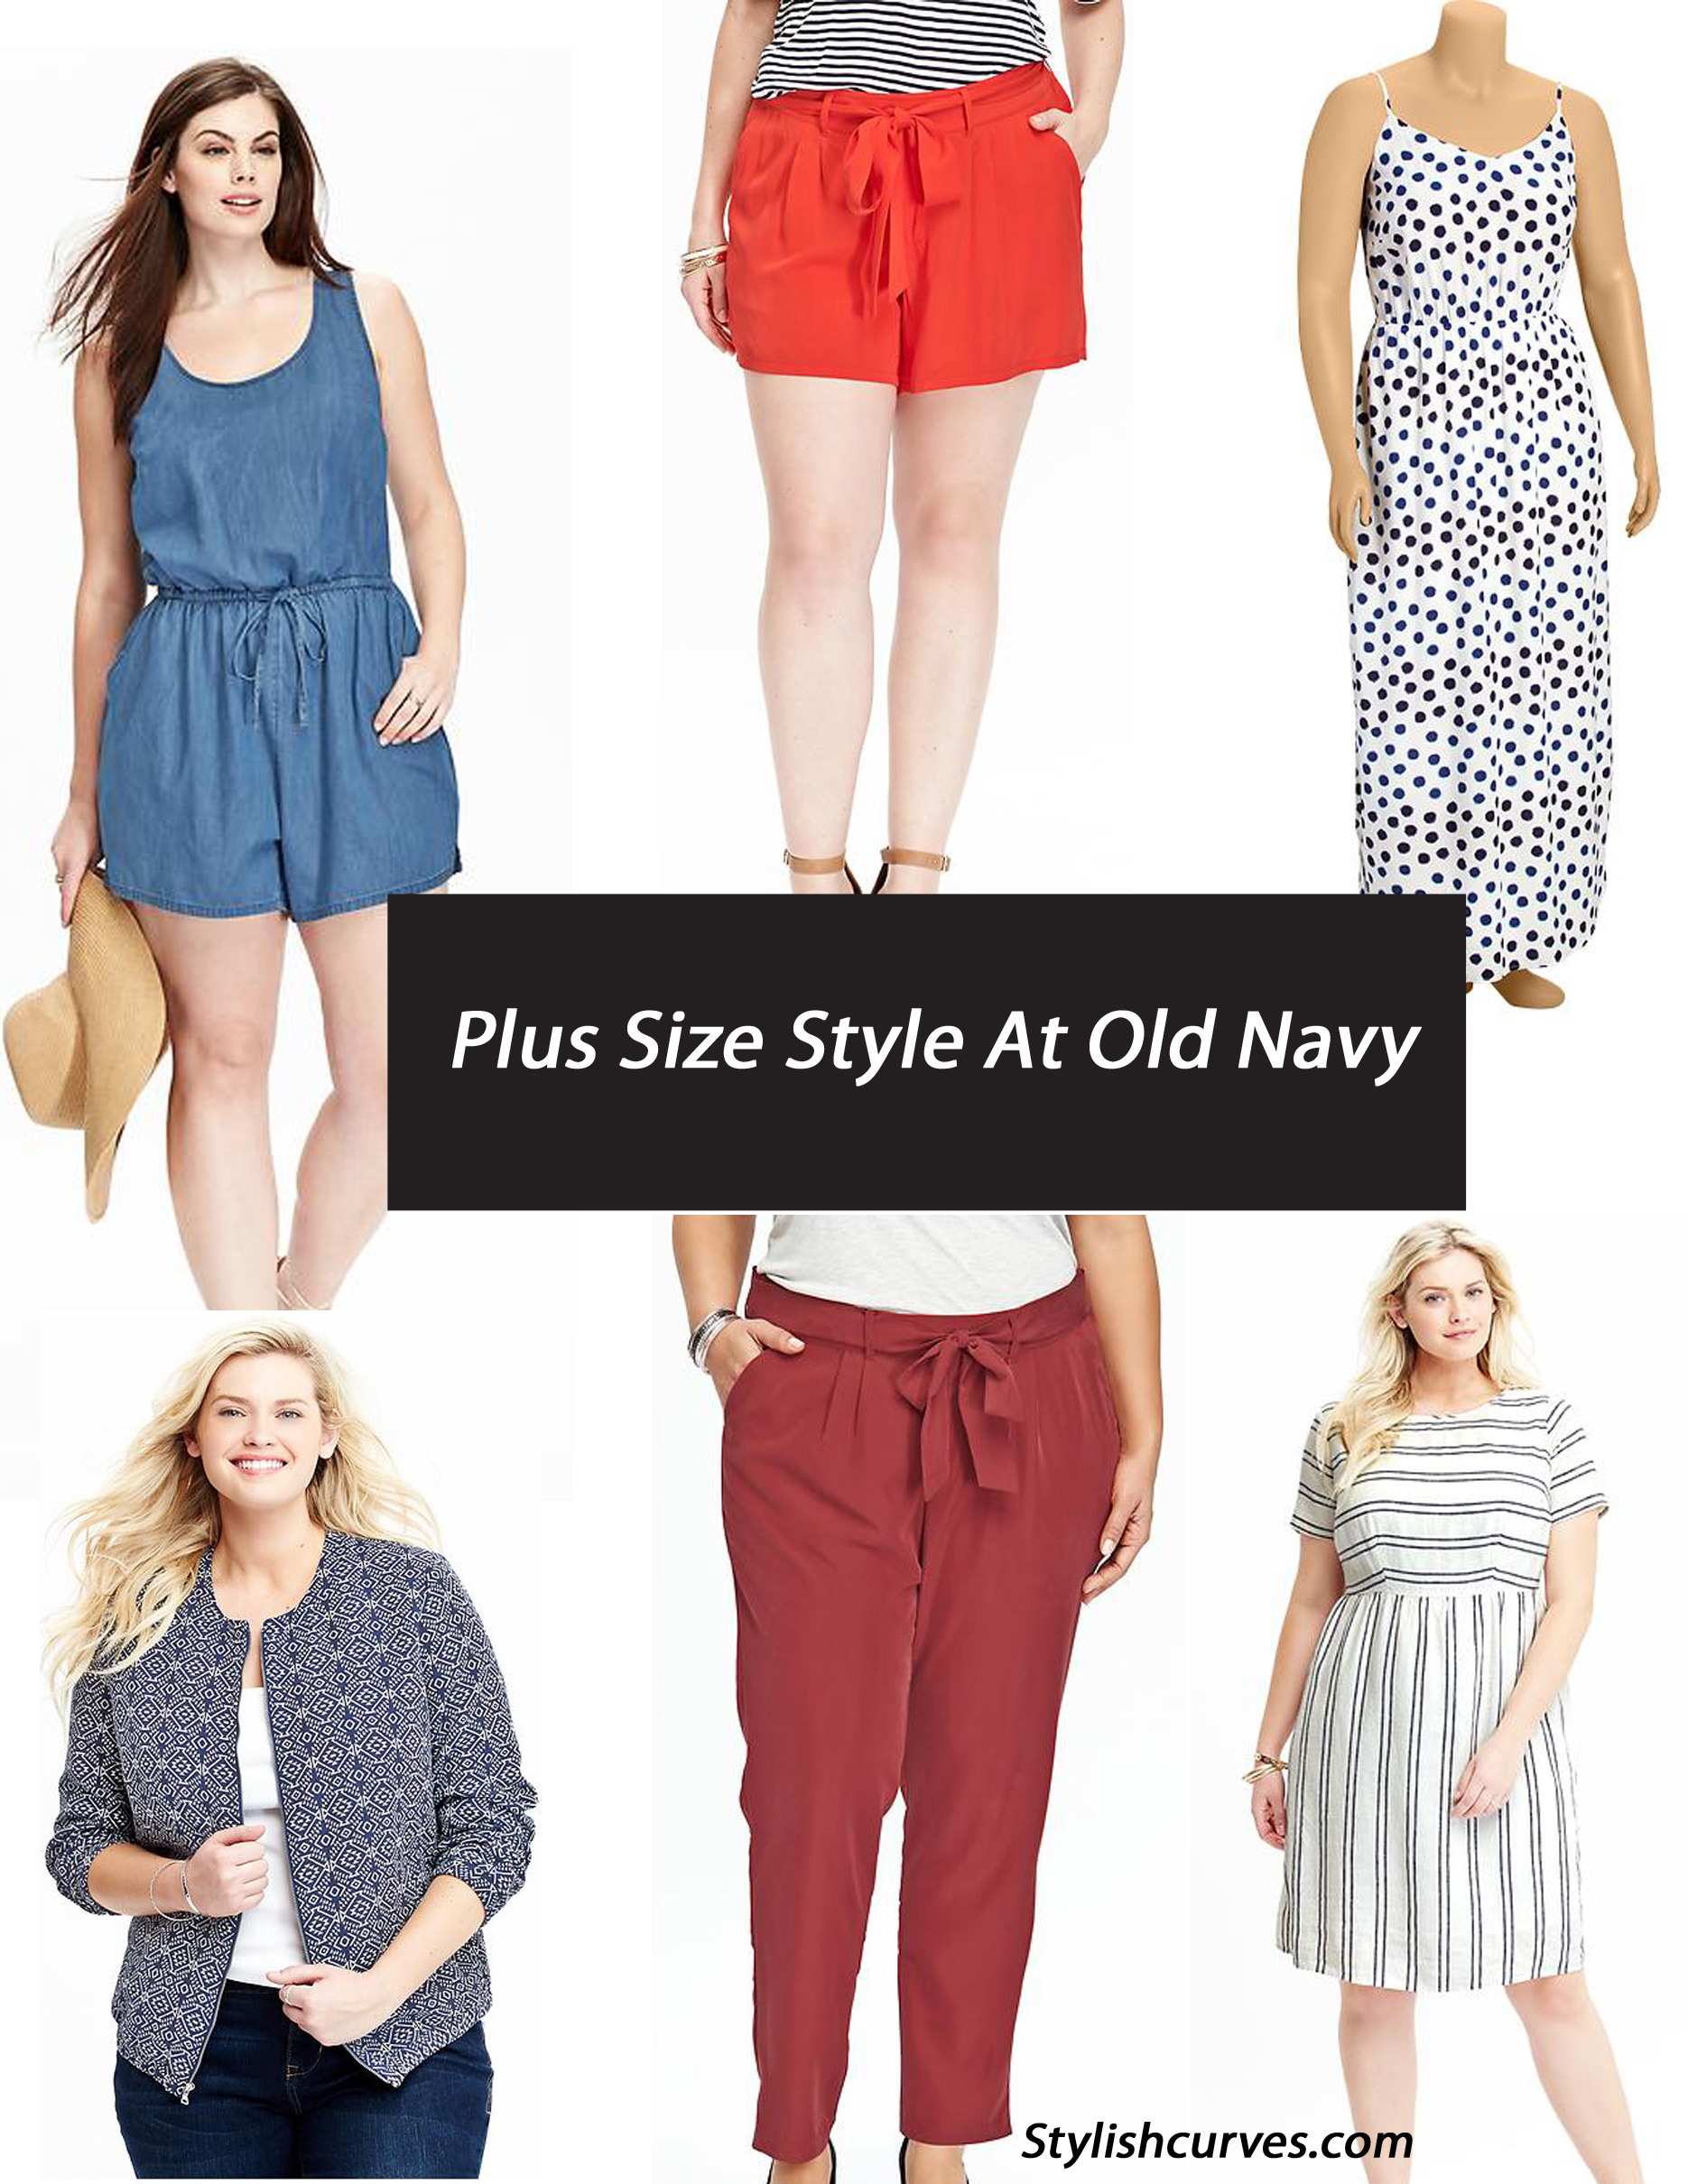 Old Navy Has Stepped Up Their Plus Size Style And They ...